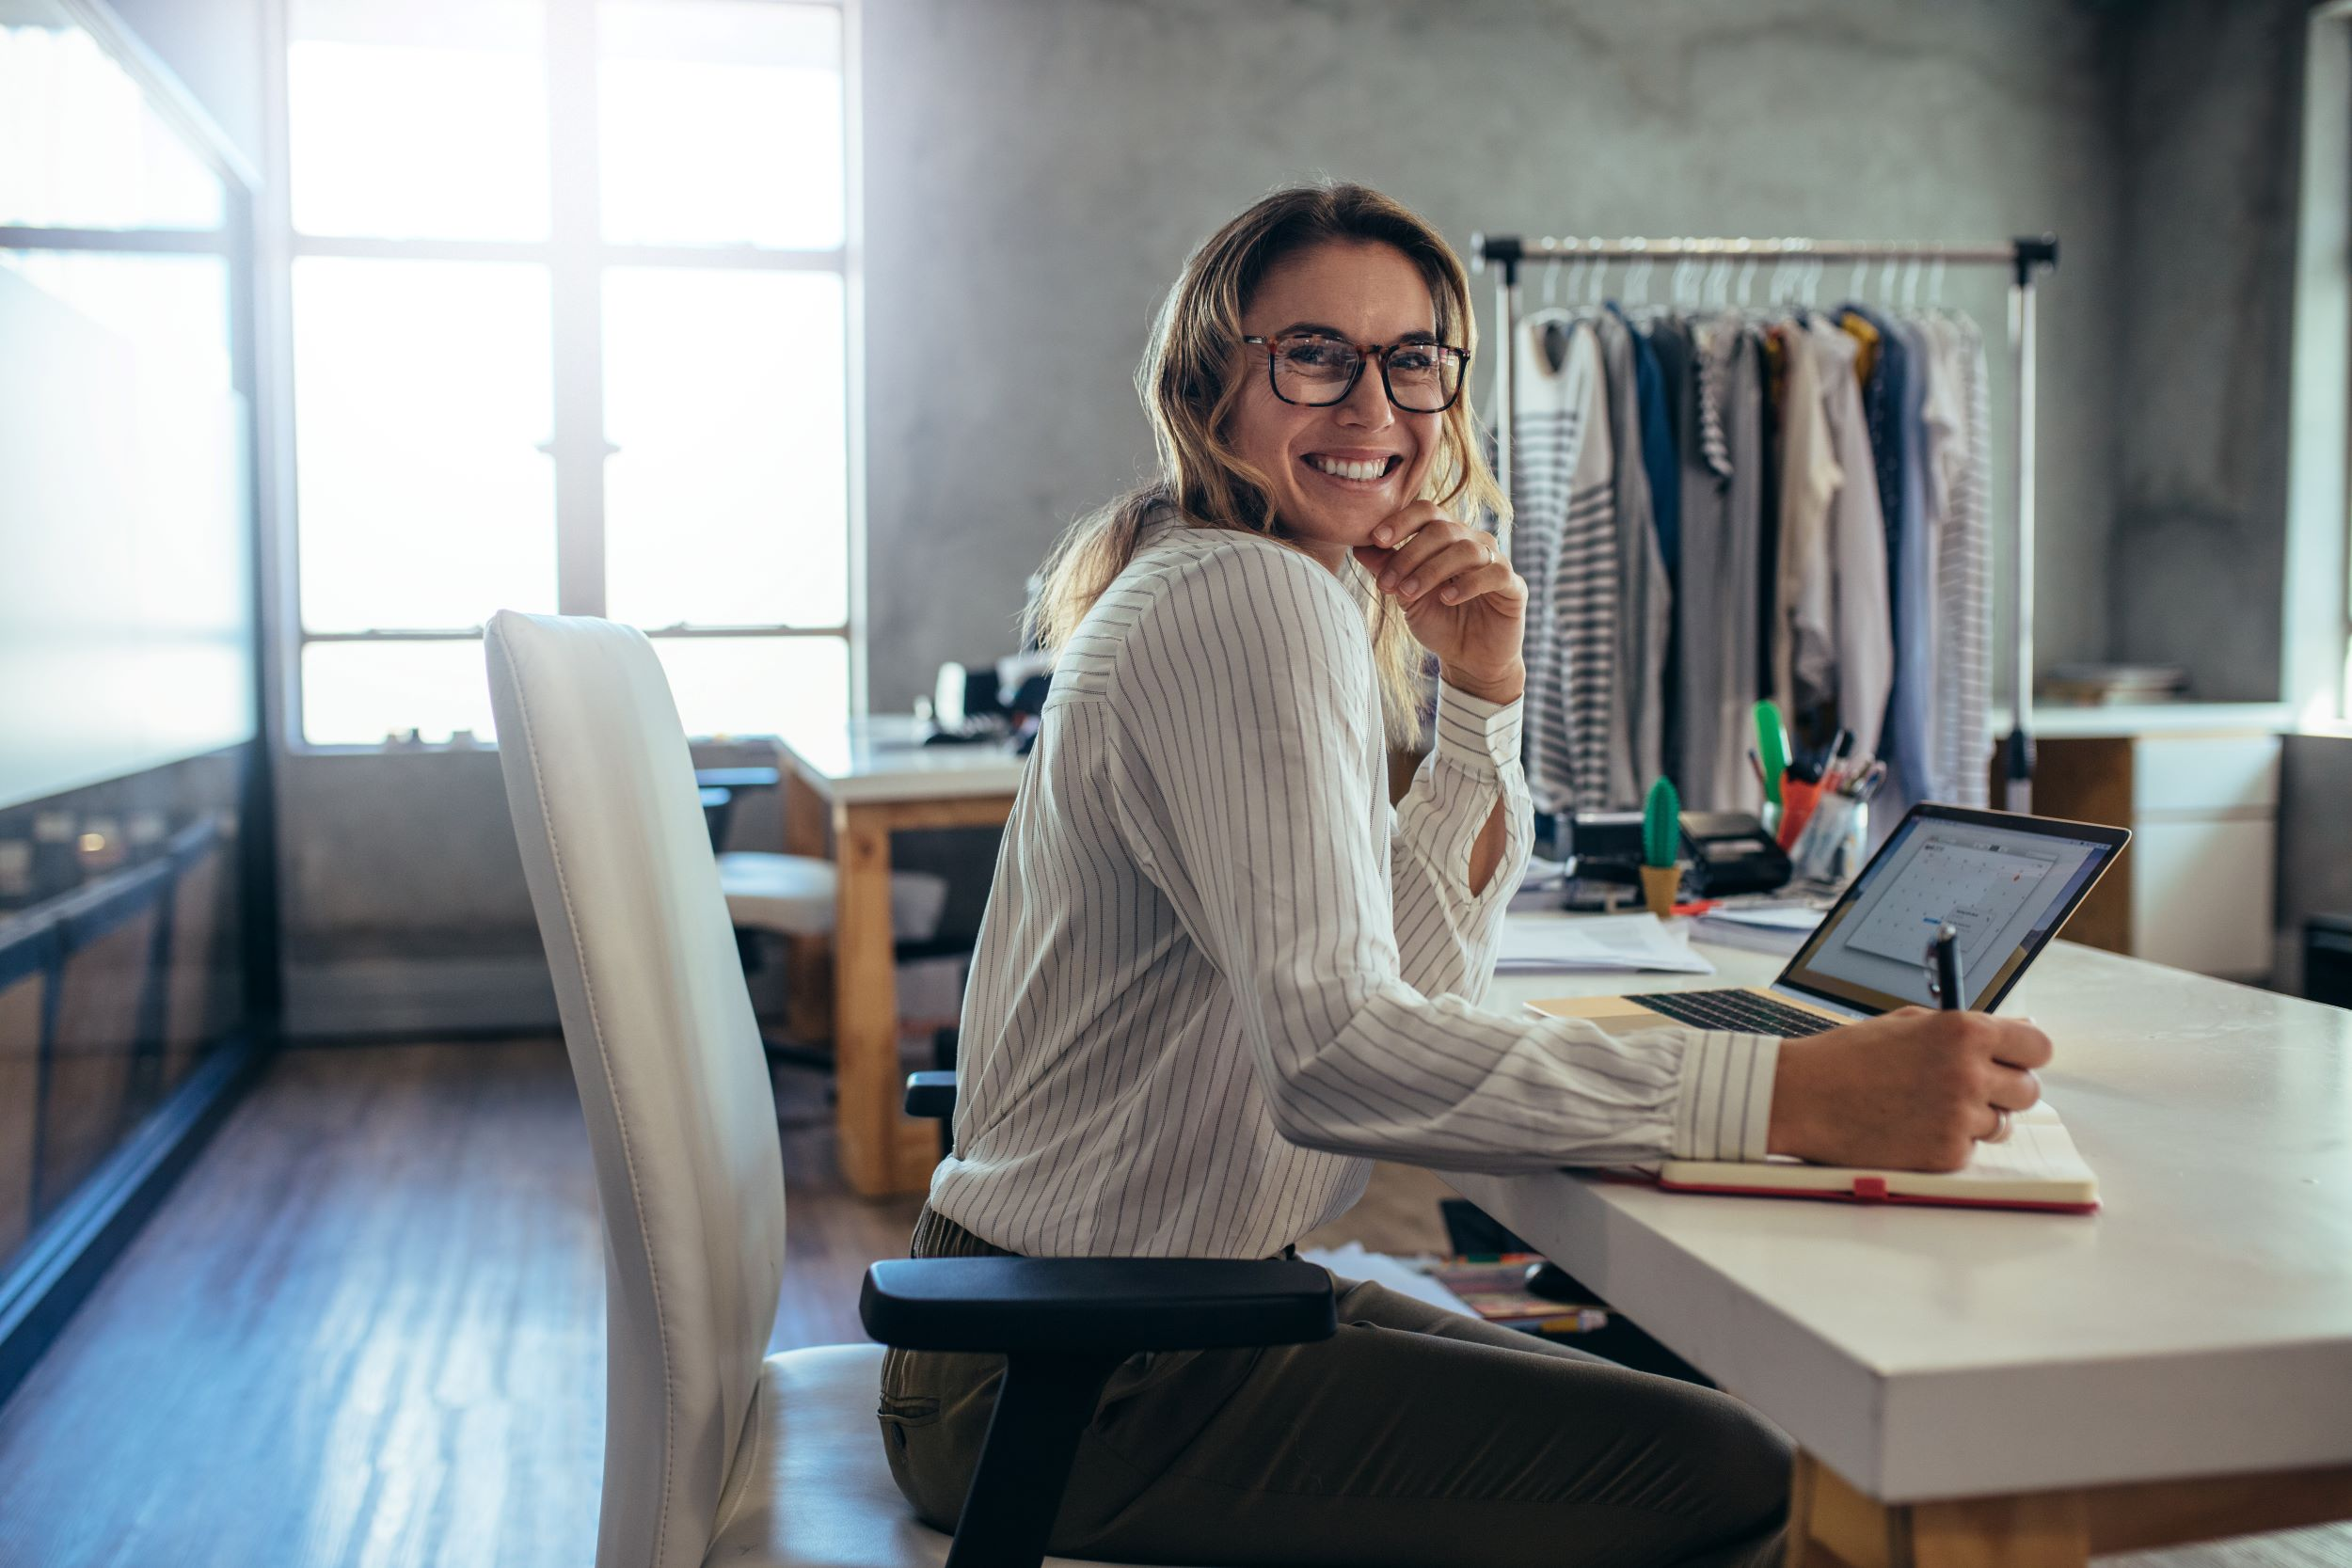 An ecommerce entrepreneur sits in front of her desk and a rack of apparel